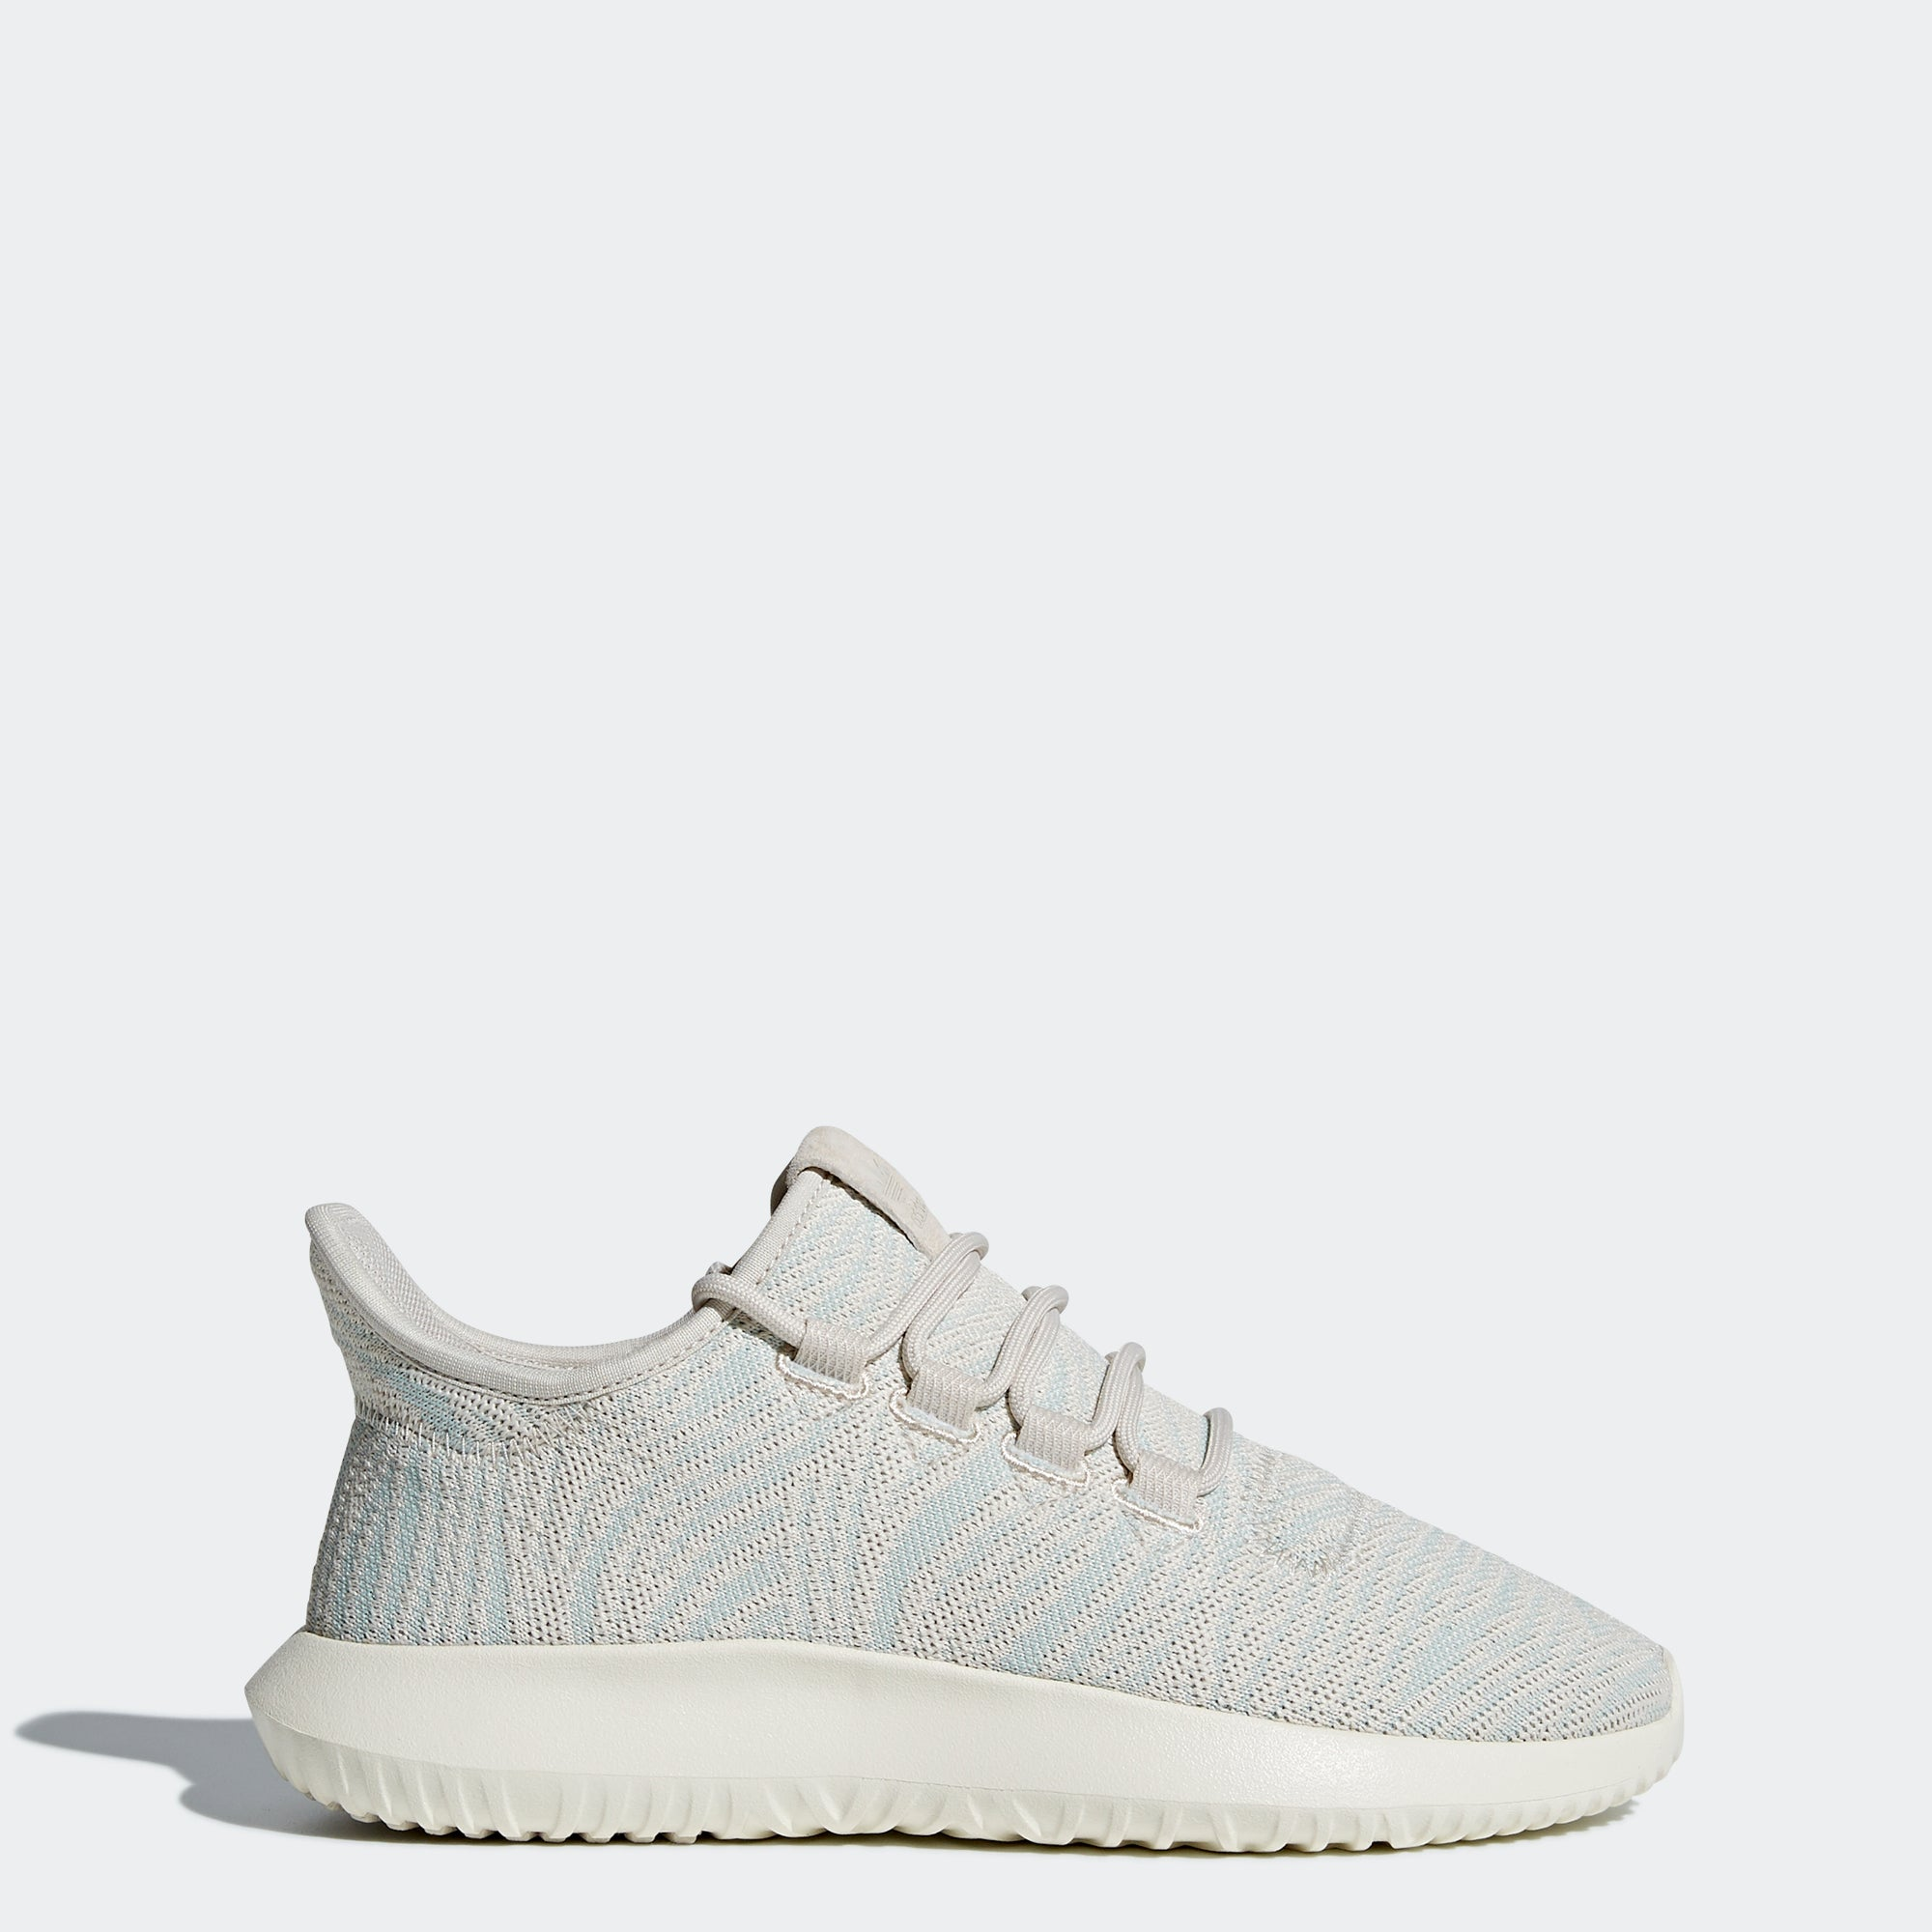 137099b83a2f Women s adidas Tubular Shadow Shoes Clear Brown  Ash Green  Off White